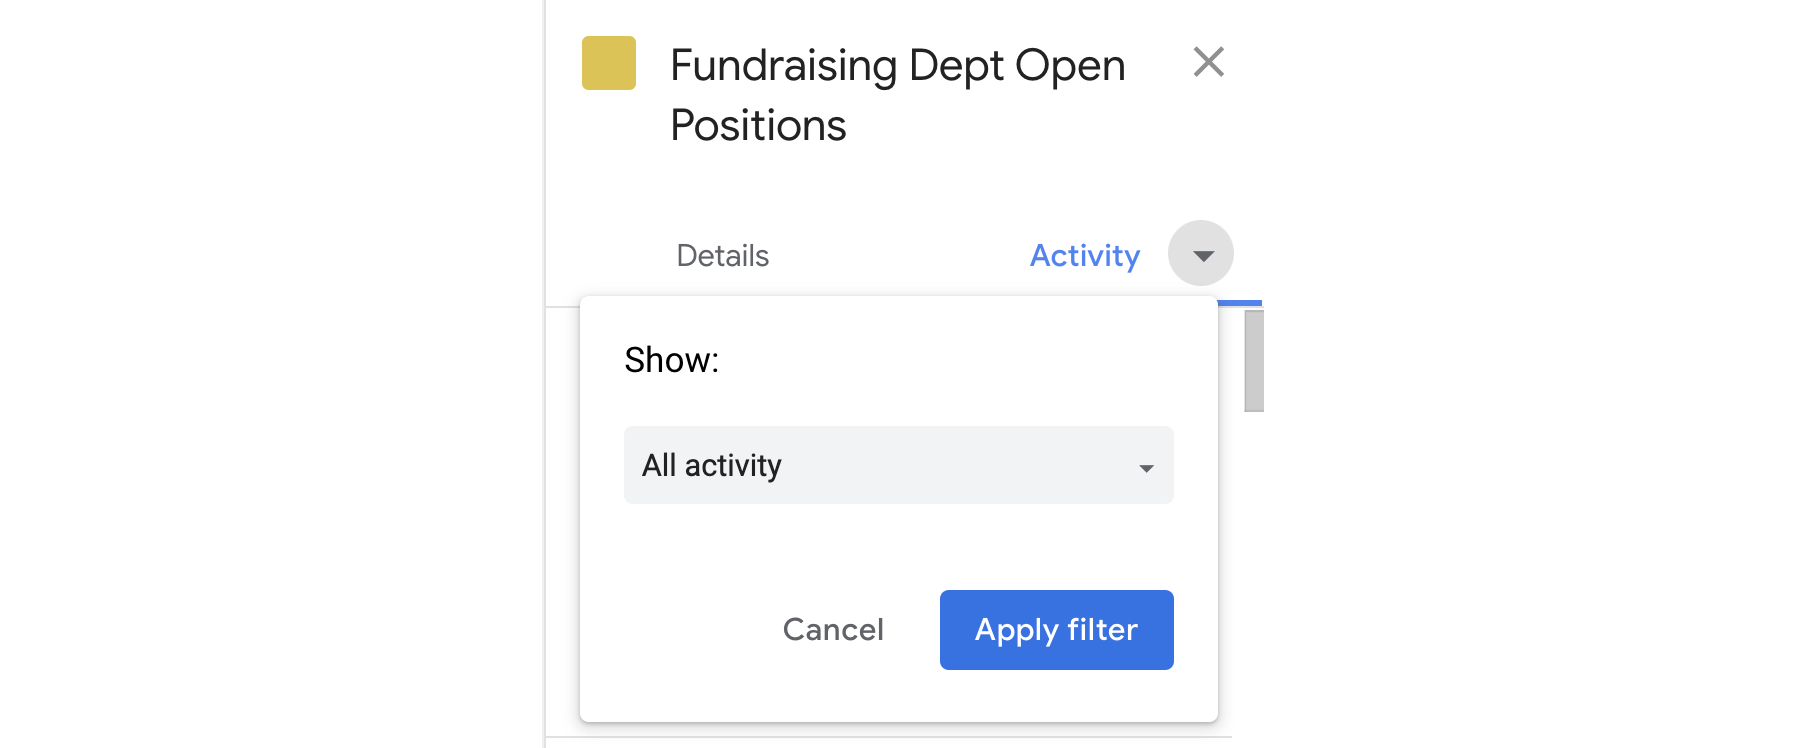 Filter activity for Fundraising Dept Open Positions queue